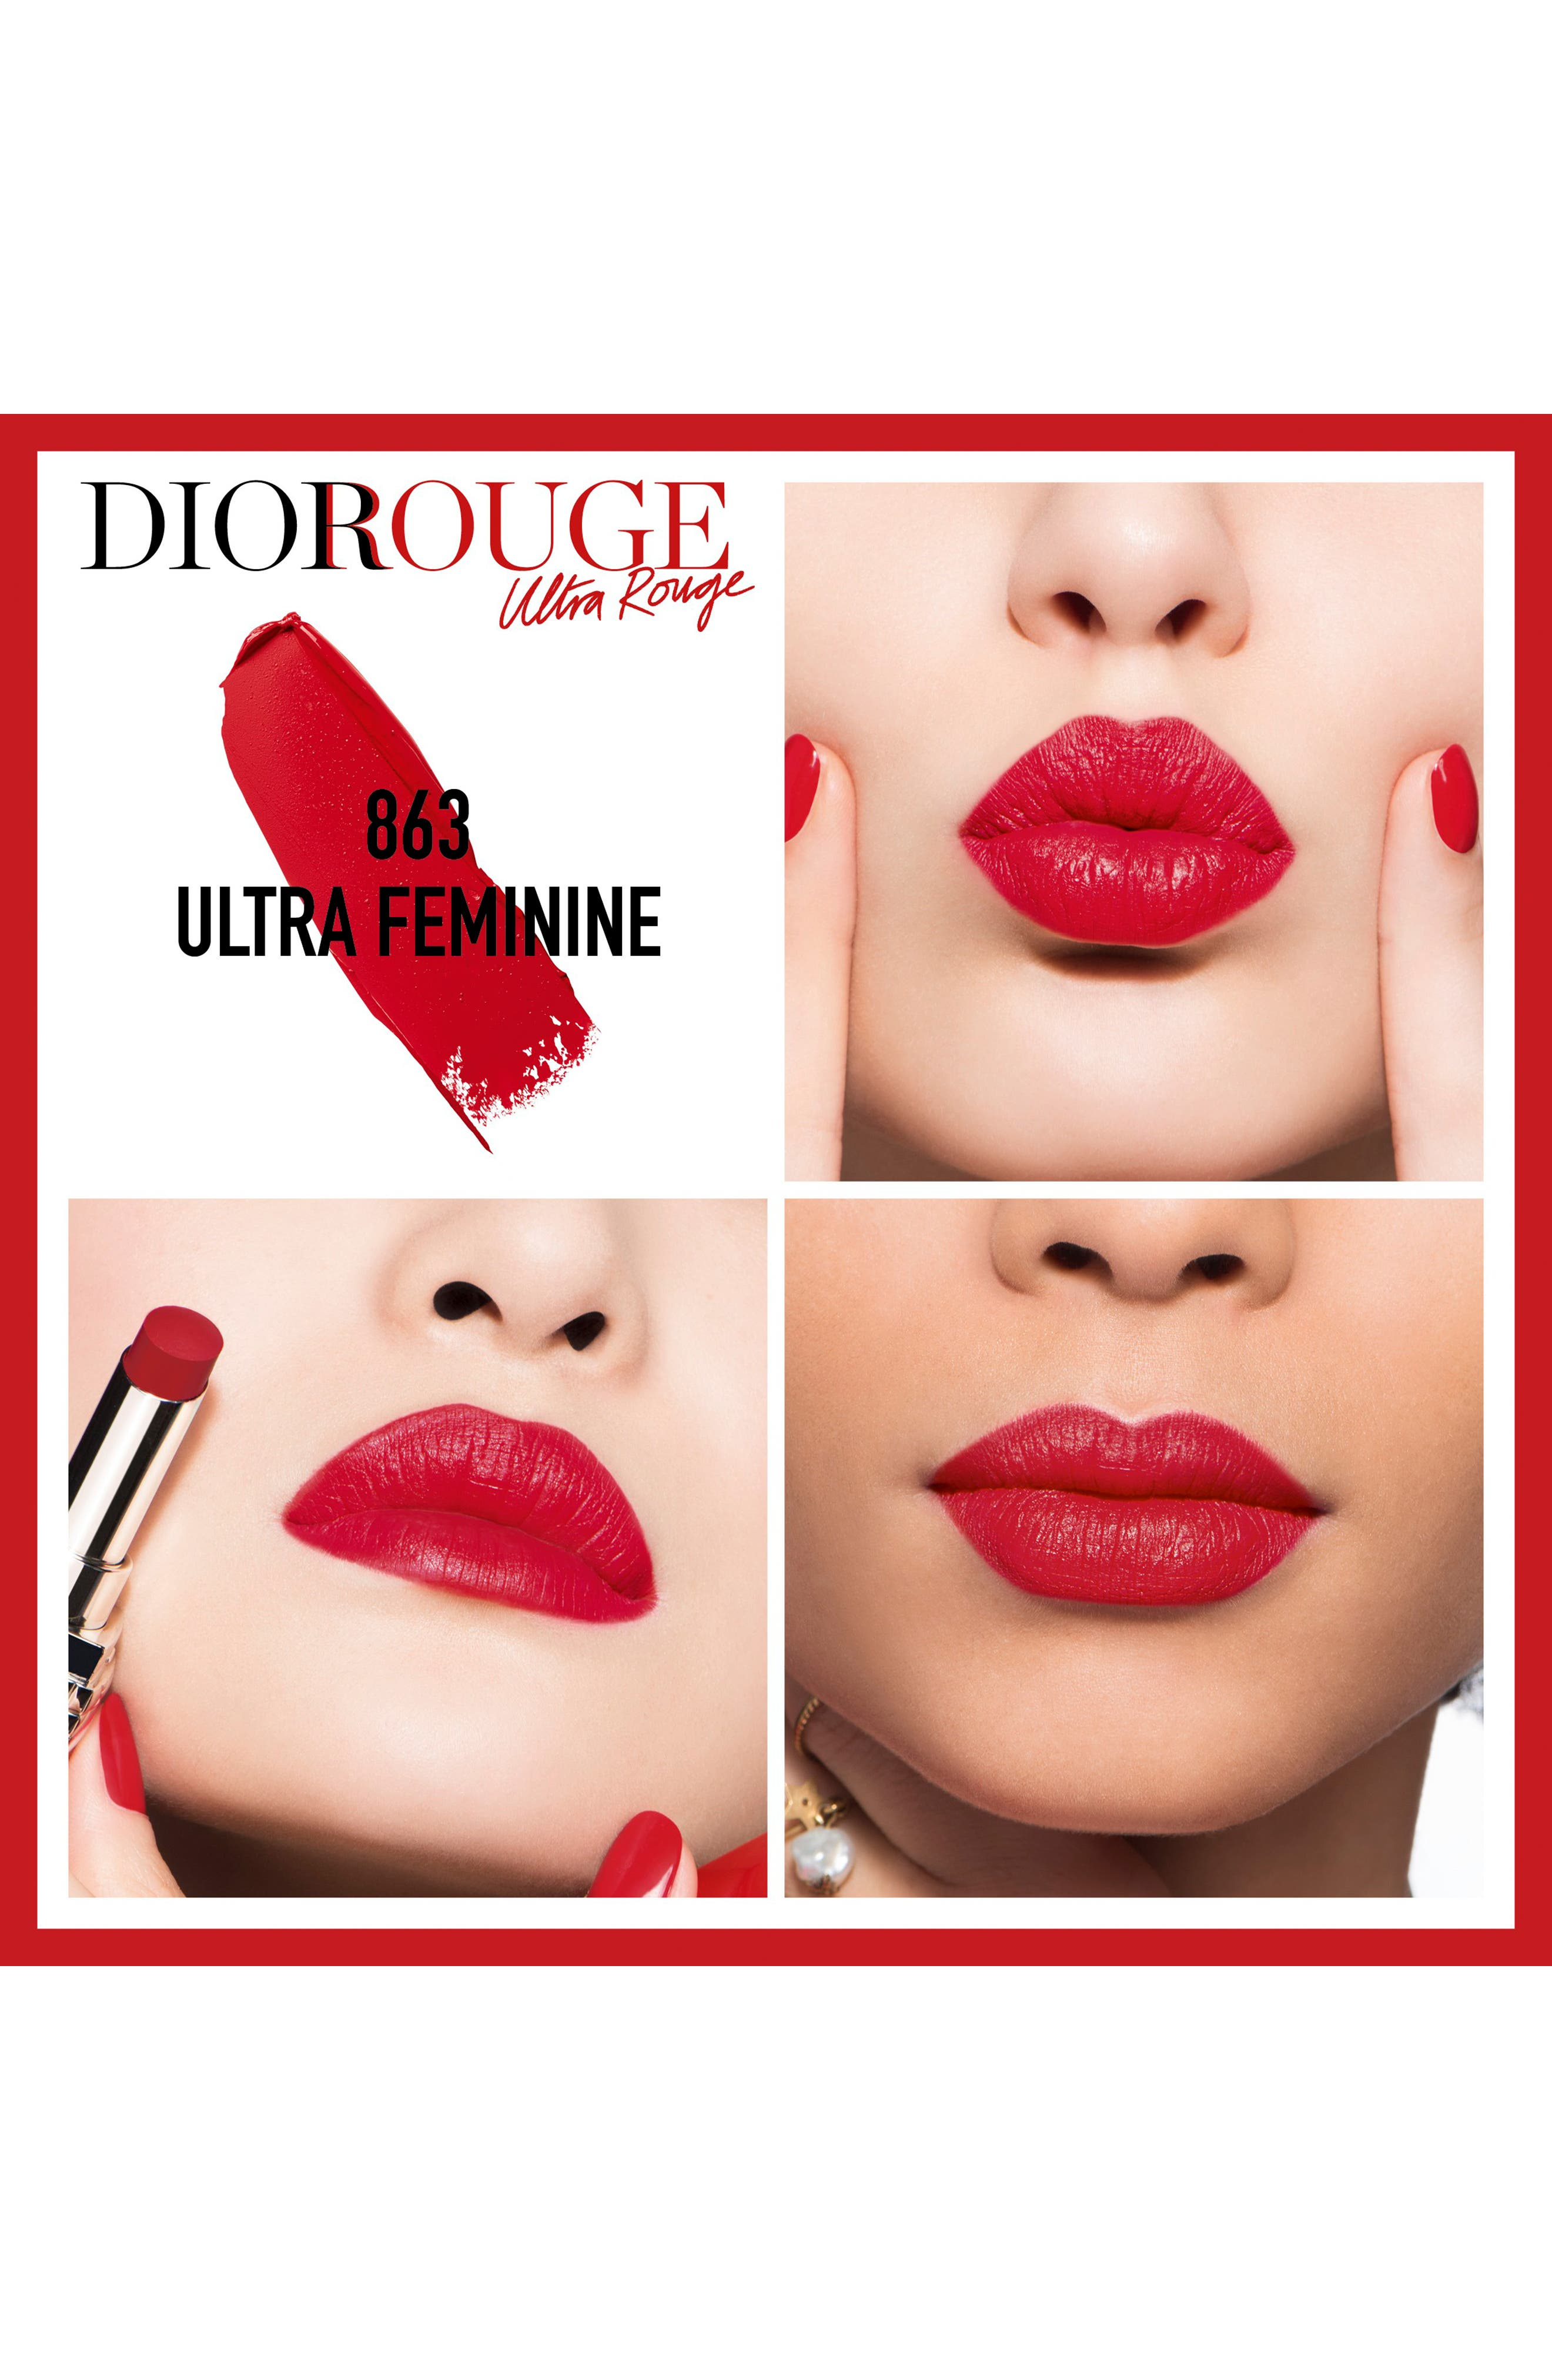 Rouge Dior Ultra Rouge Pigmented Hydra Lipstick,                             Alternate thumbnail 2, color,                             863 ULTRA FEMININE